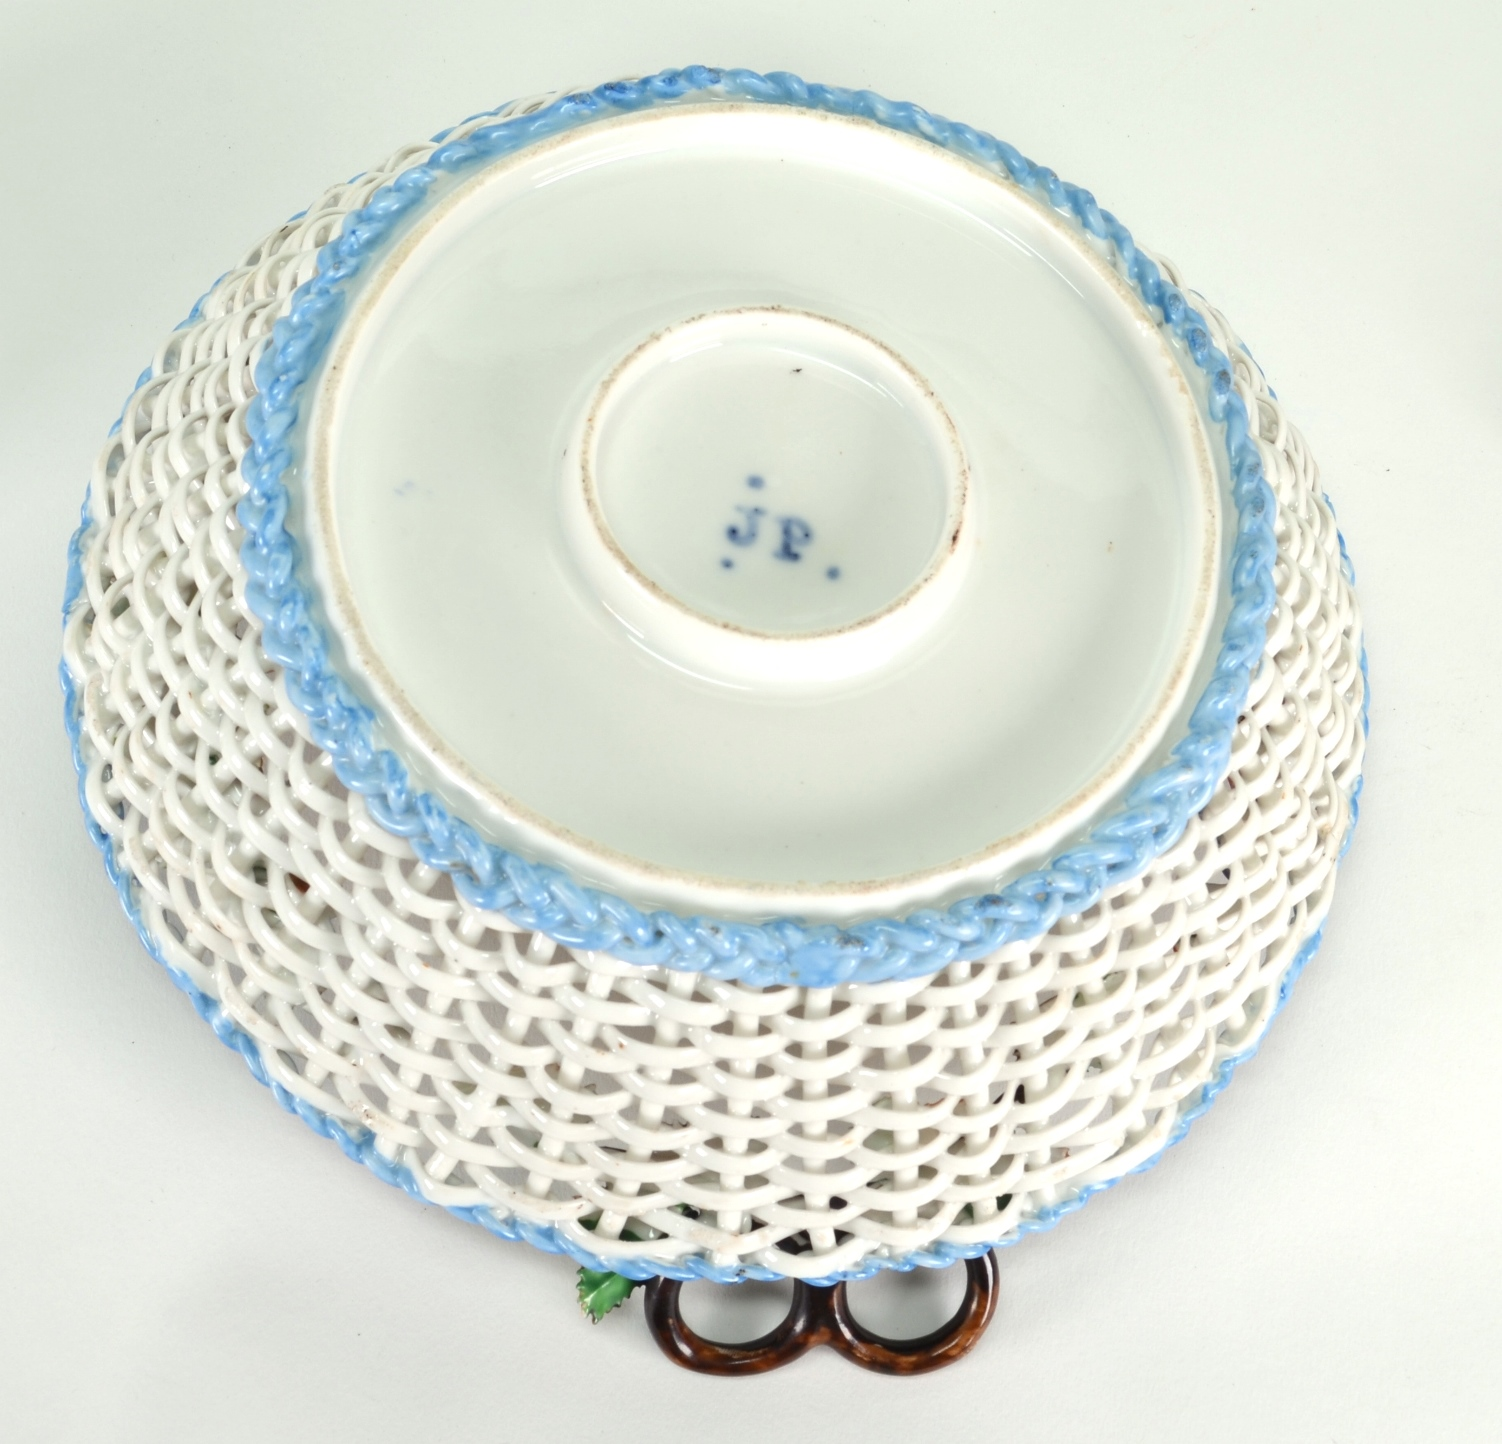 View 8: Old Paris Porcelain Basket by Jacob Petit, c. 1840